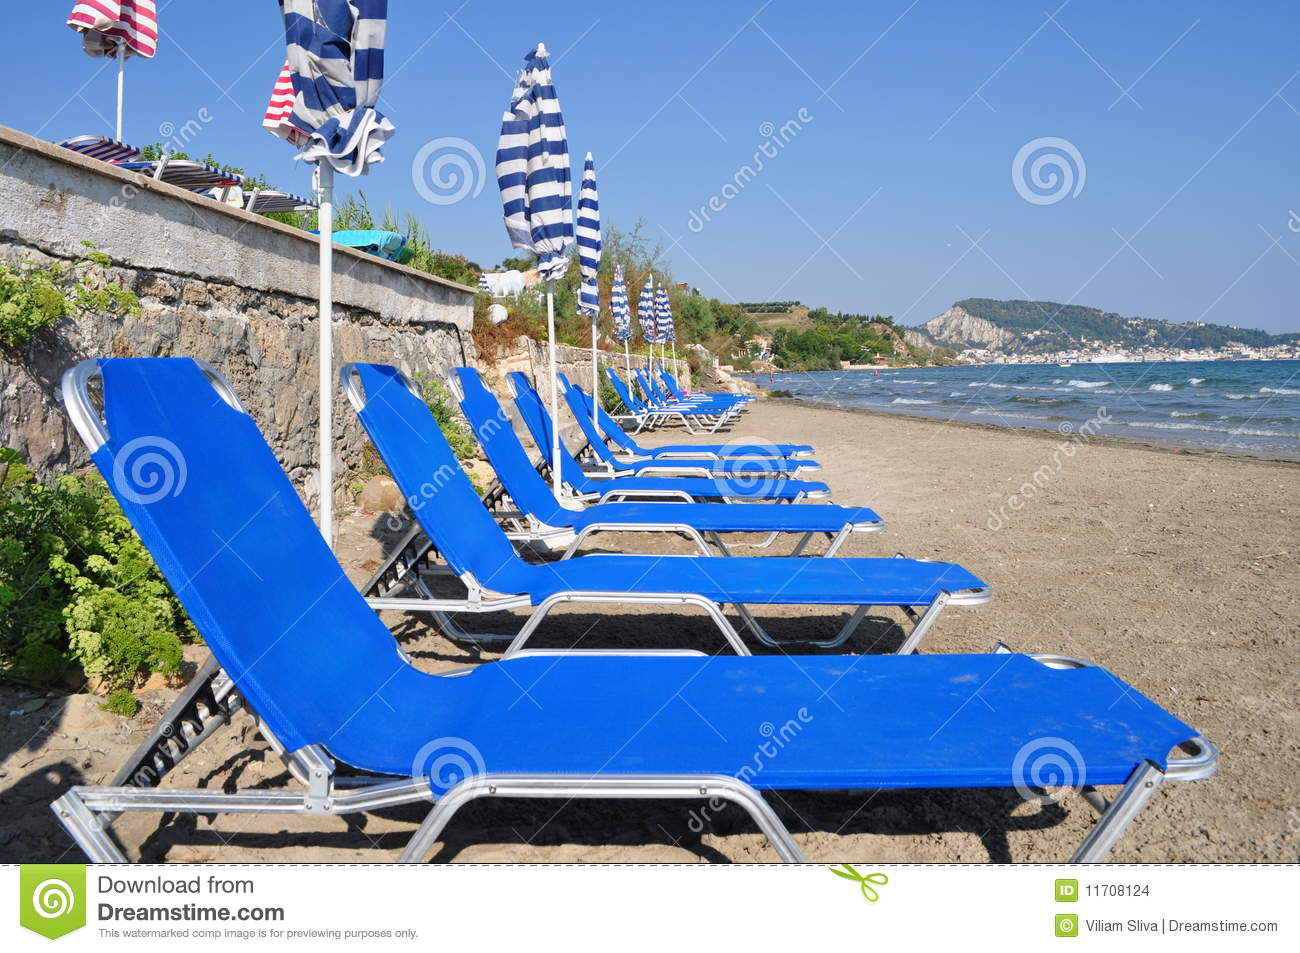 Deckchairs and sunshades